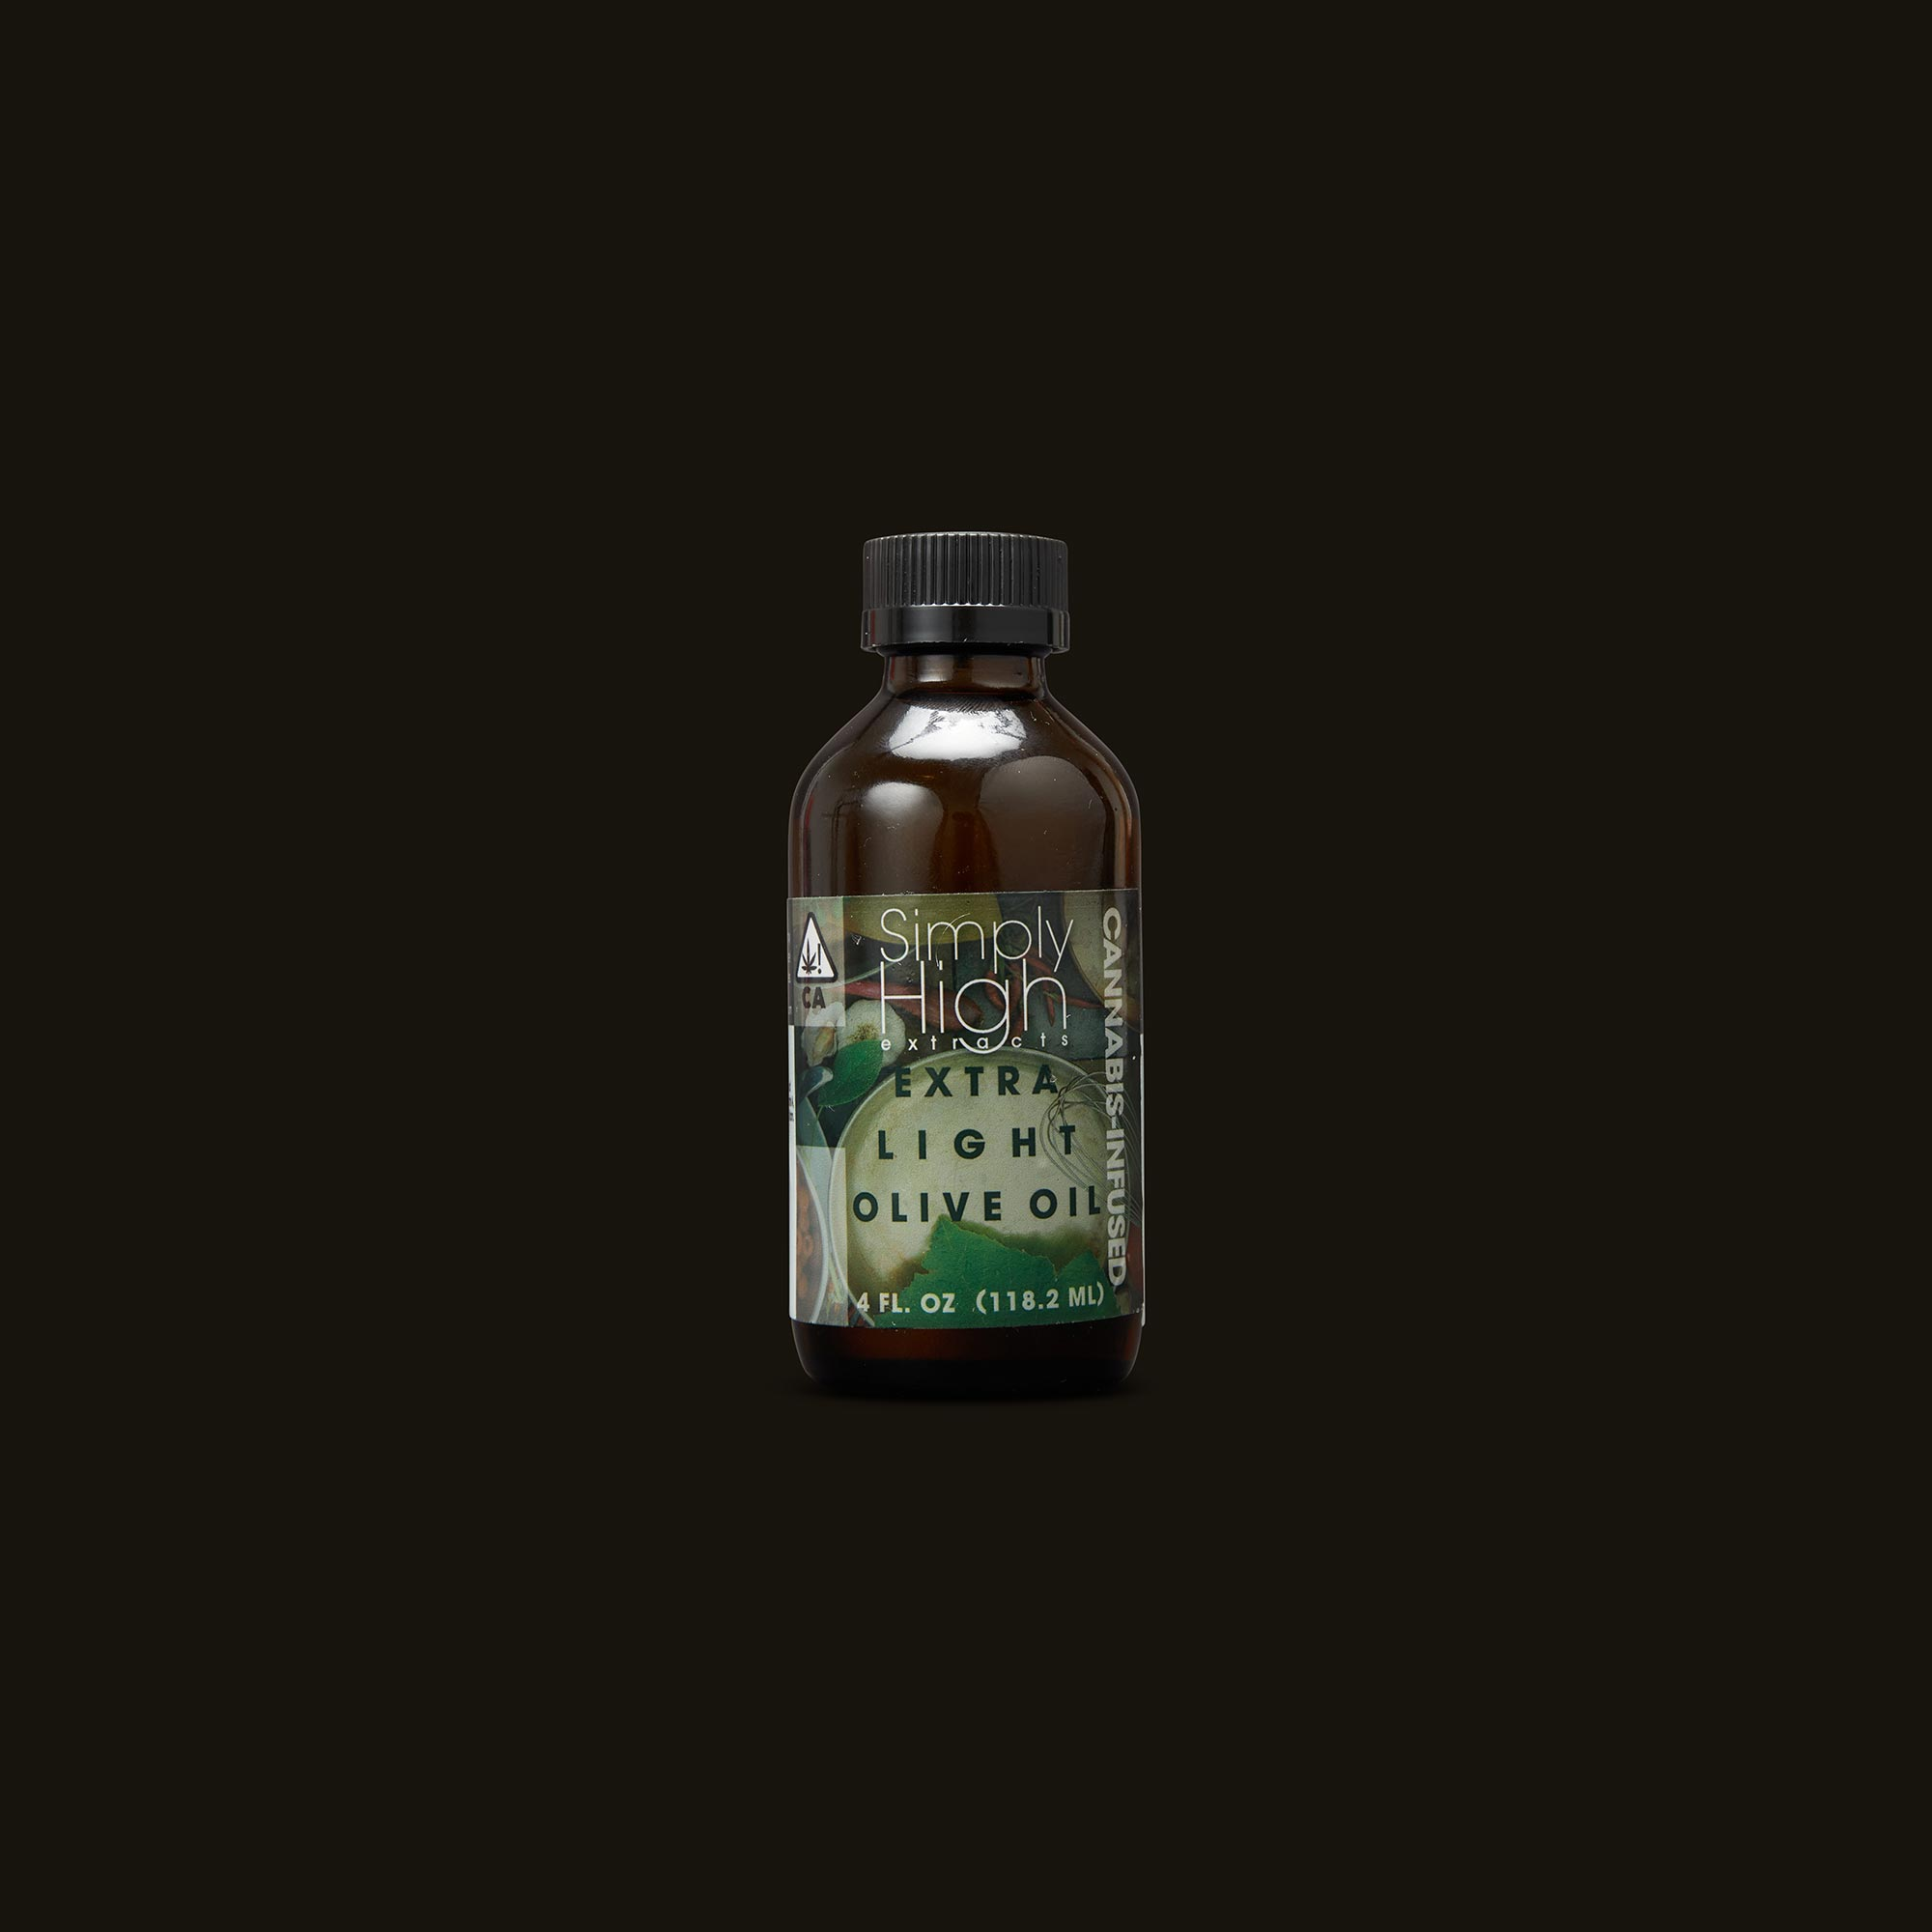 Simply High Extracts Extra Light Olive Oil Front Bottle